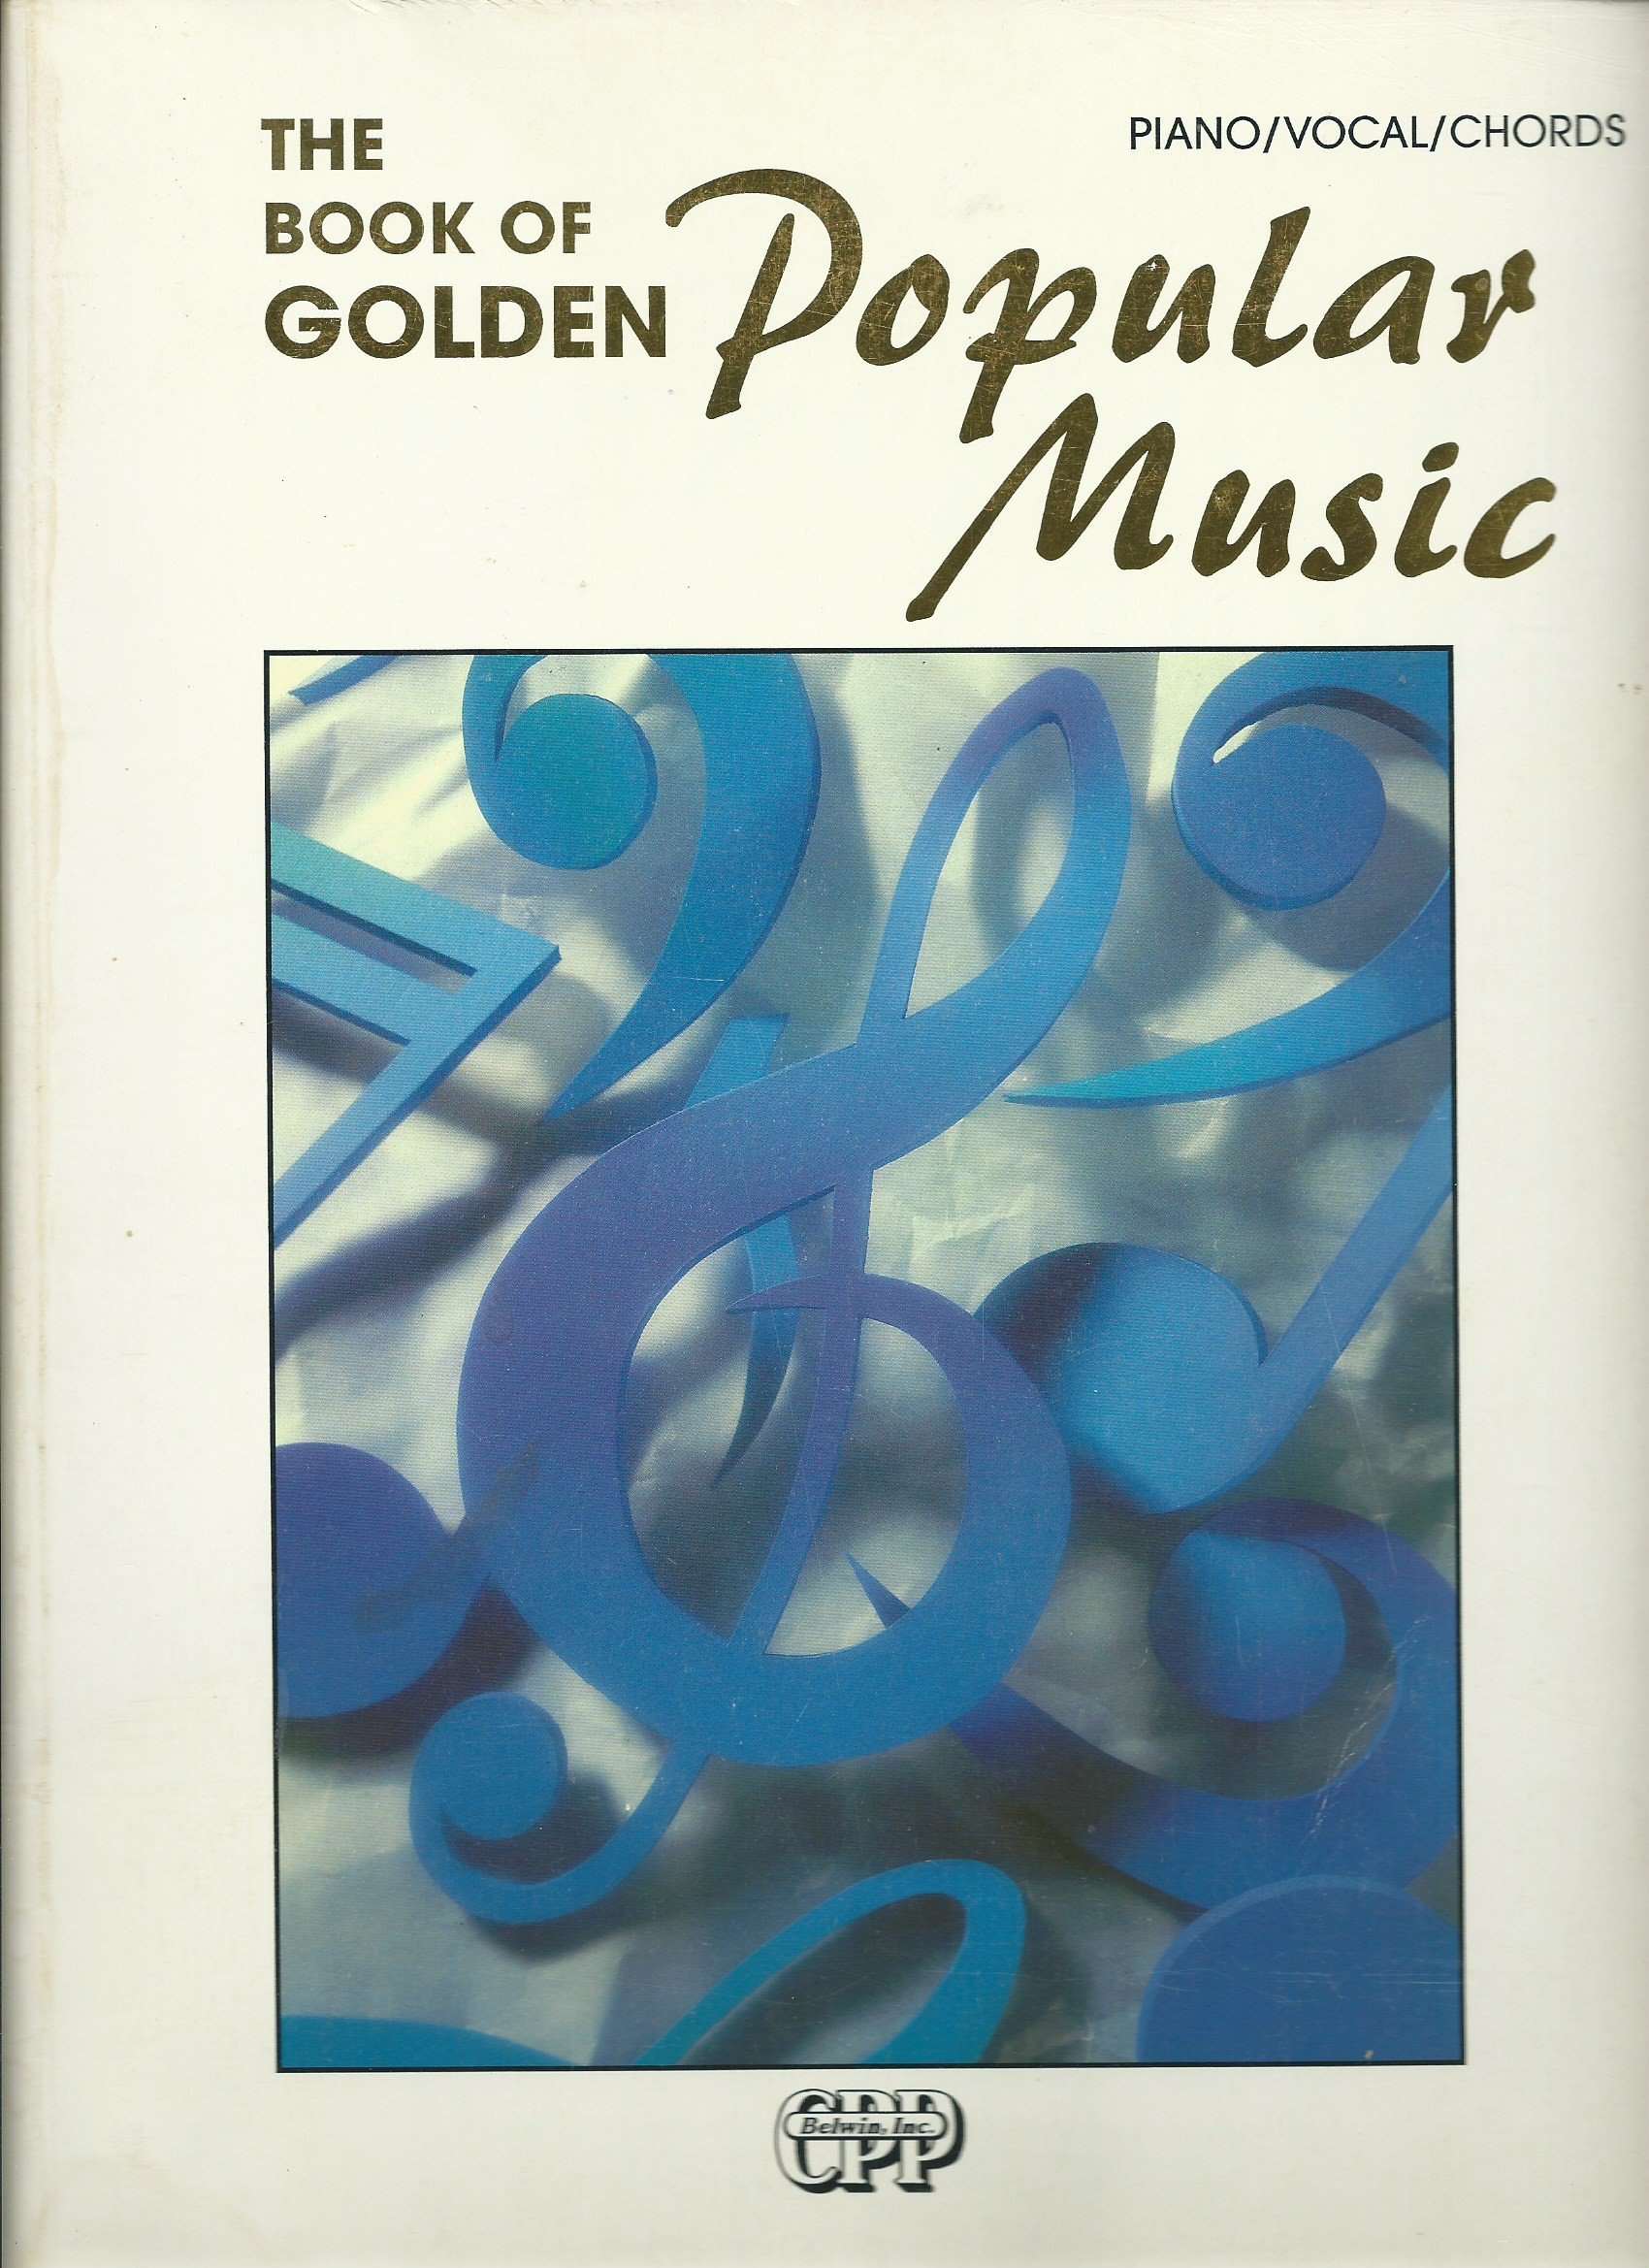 The Book Of Golden Popular Music Songbook Piano Vocal Guitar